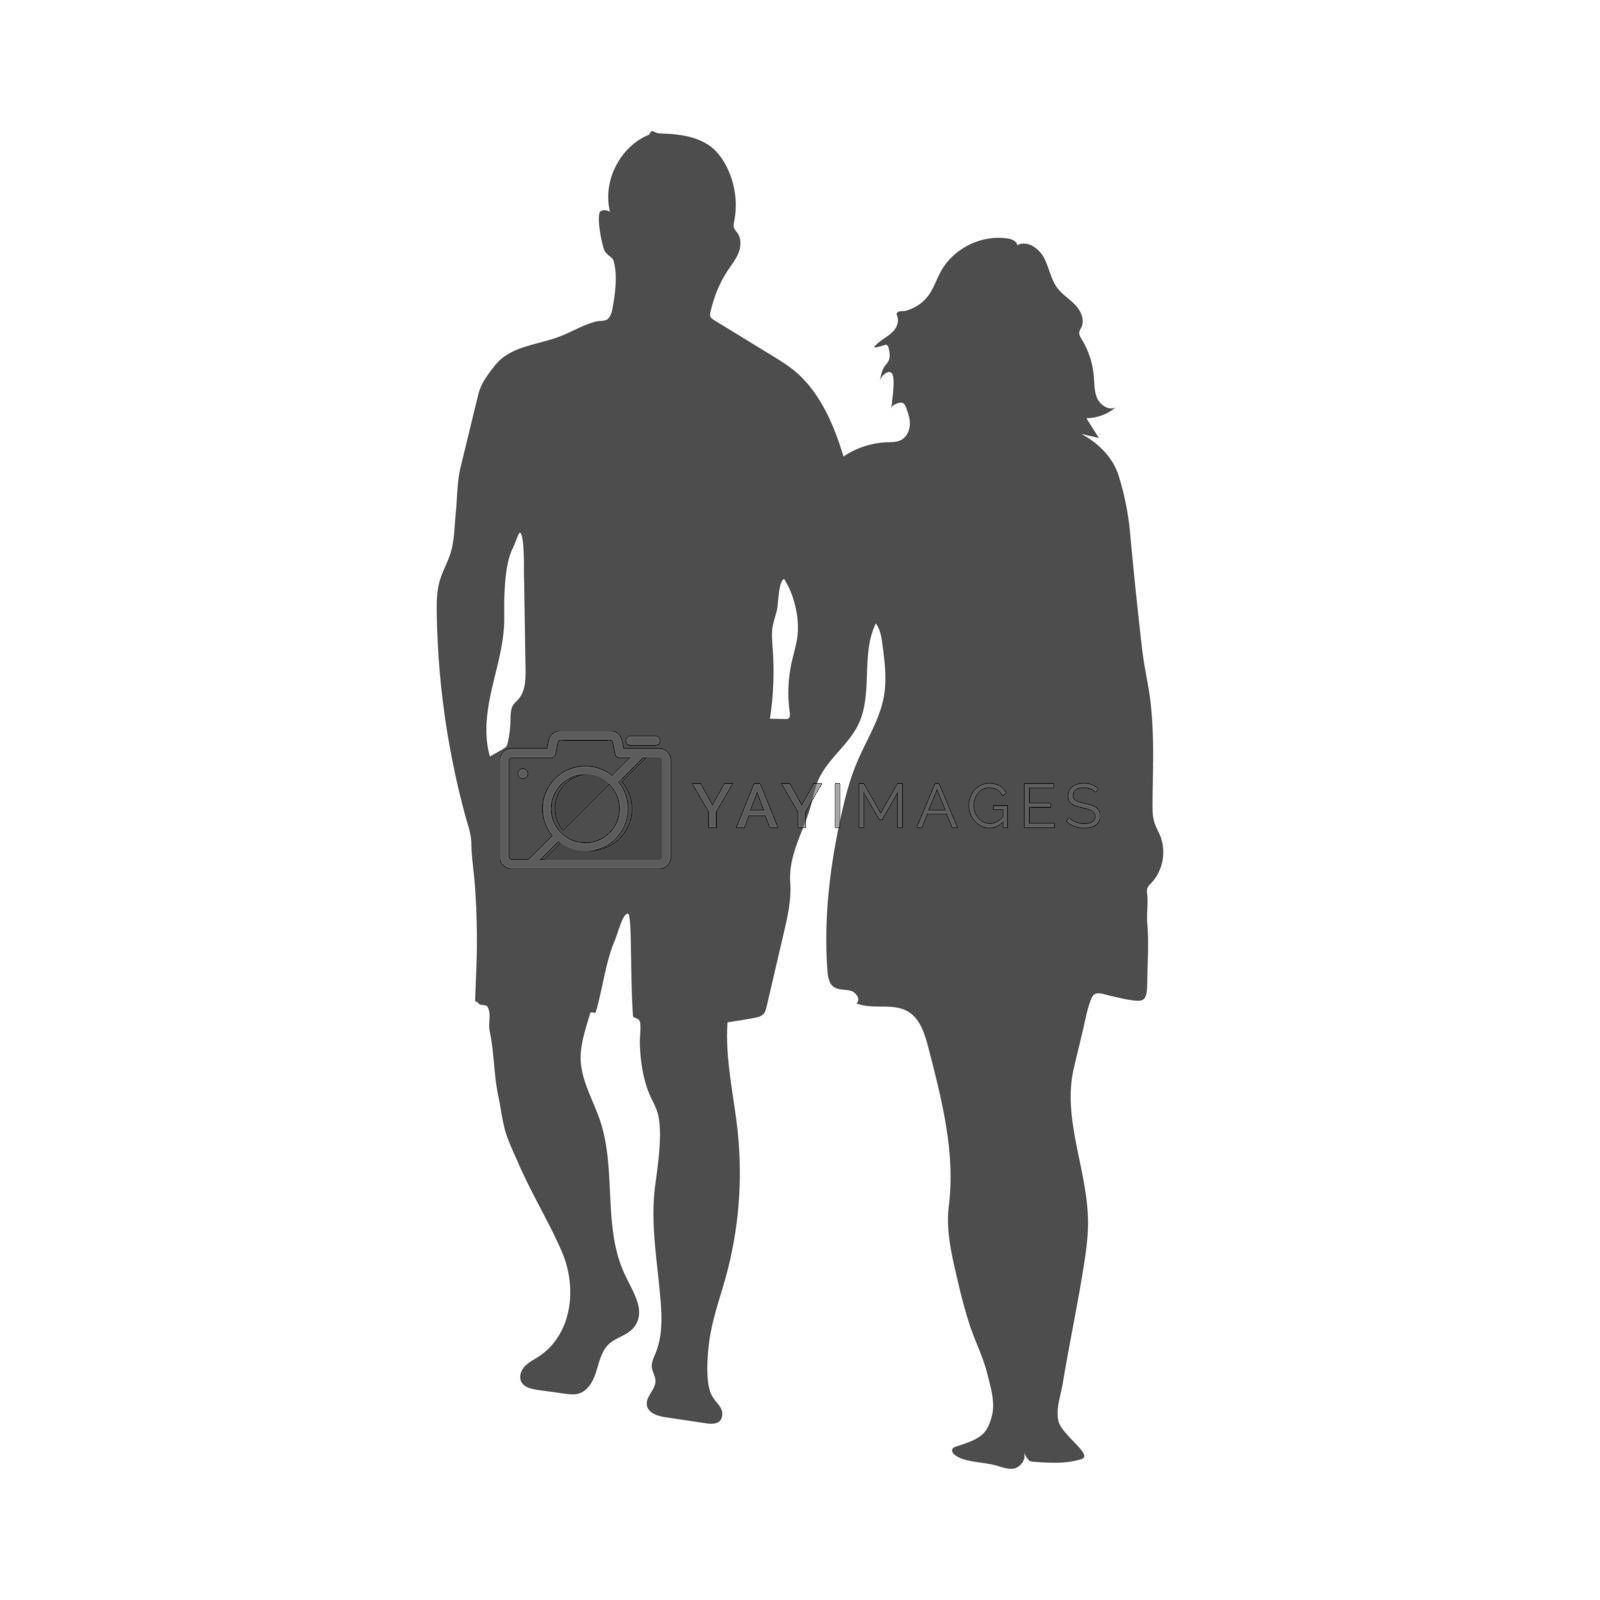 Silhouette of a man and a woman. A man and a woman stand hand in hand. Vector illustration, flat style.